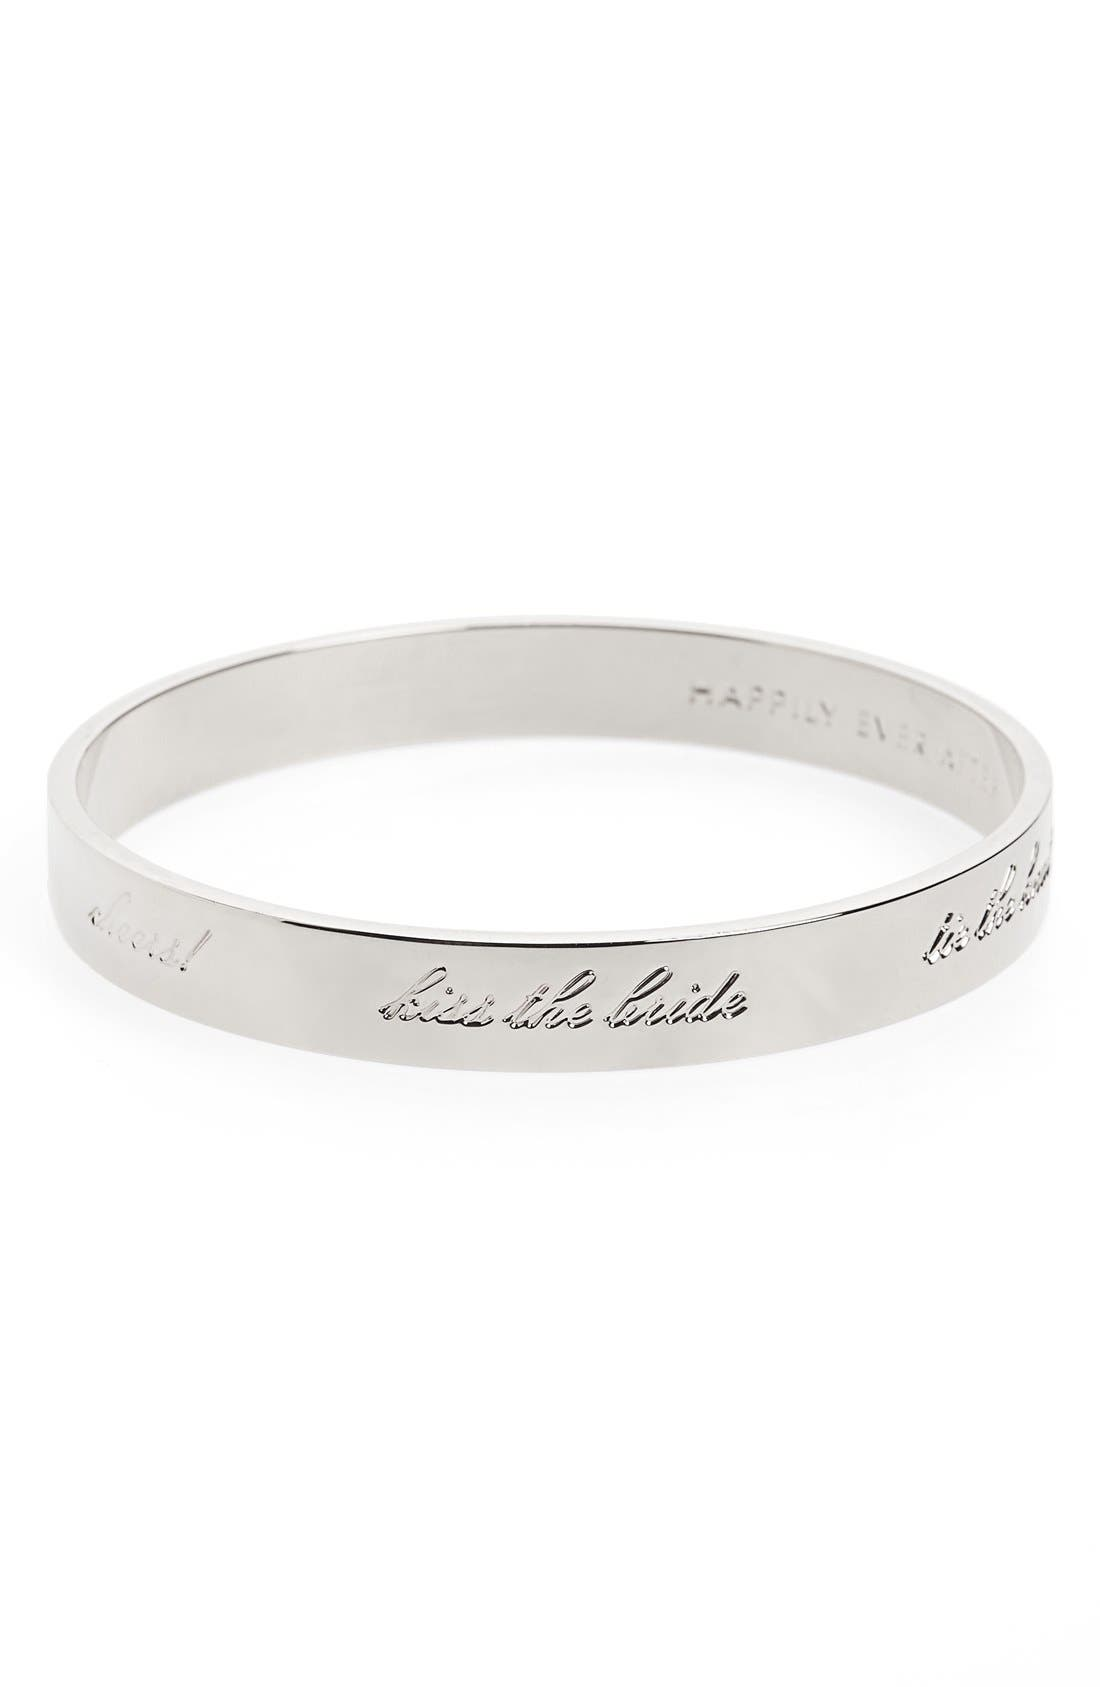 'idiom - happily ever after' bangle,                         Main,                         color, BRIDE- SILVER